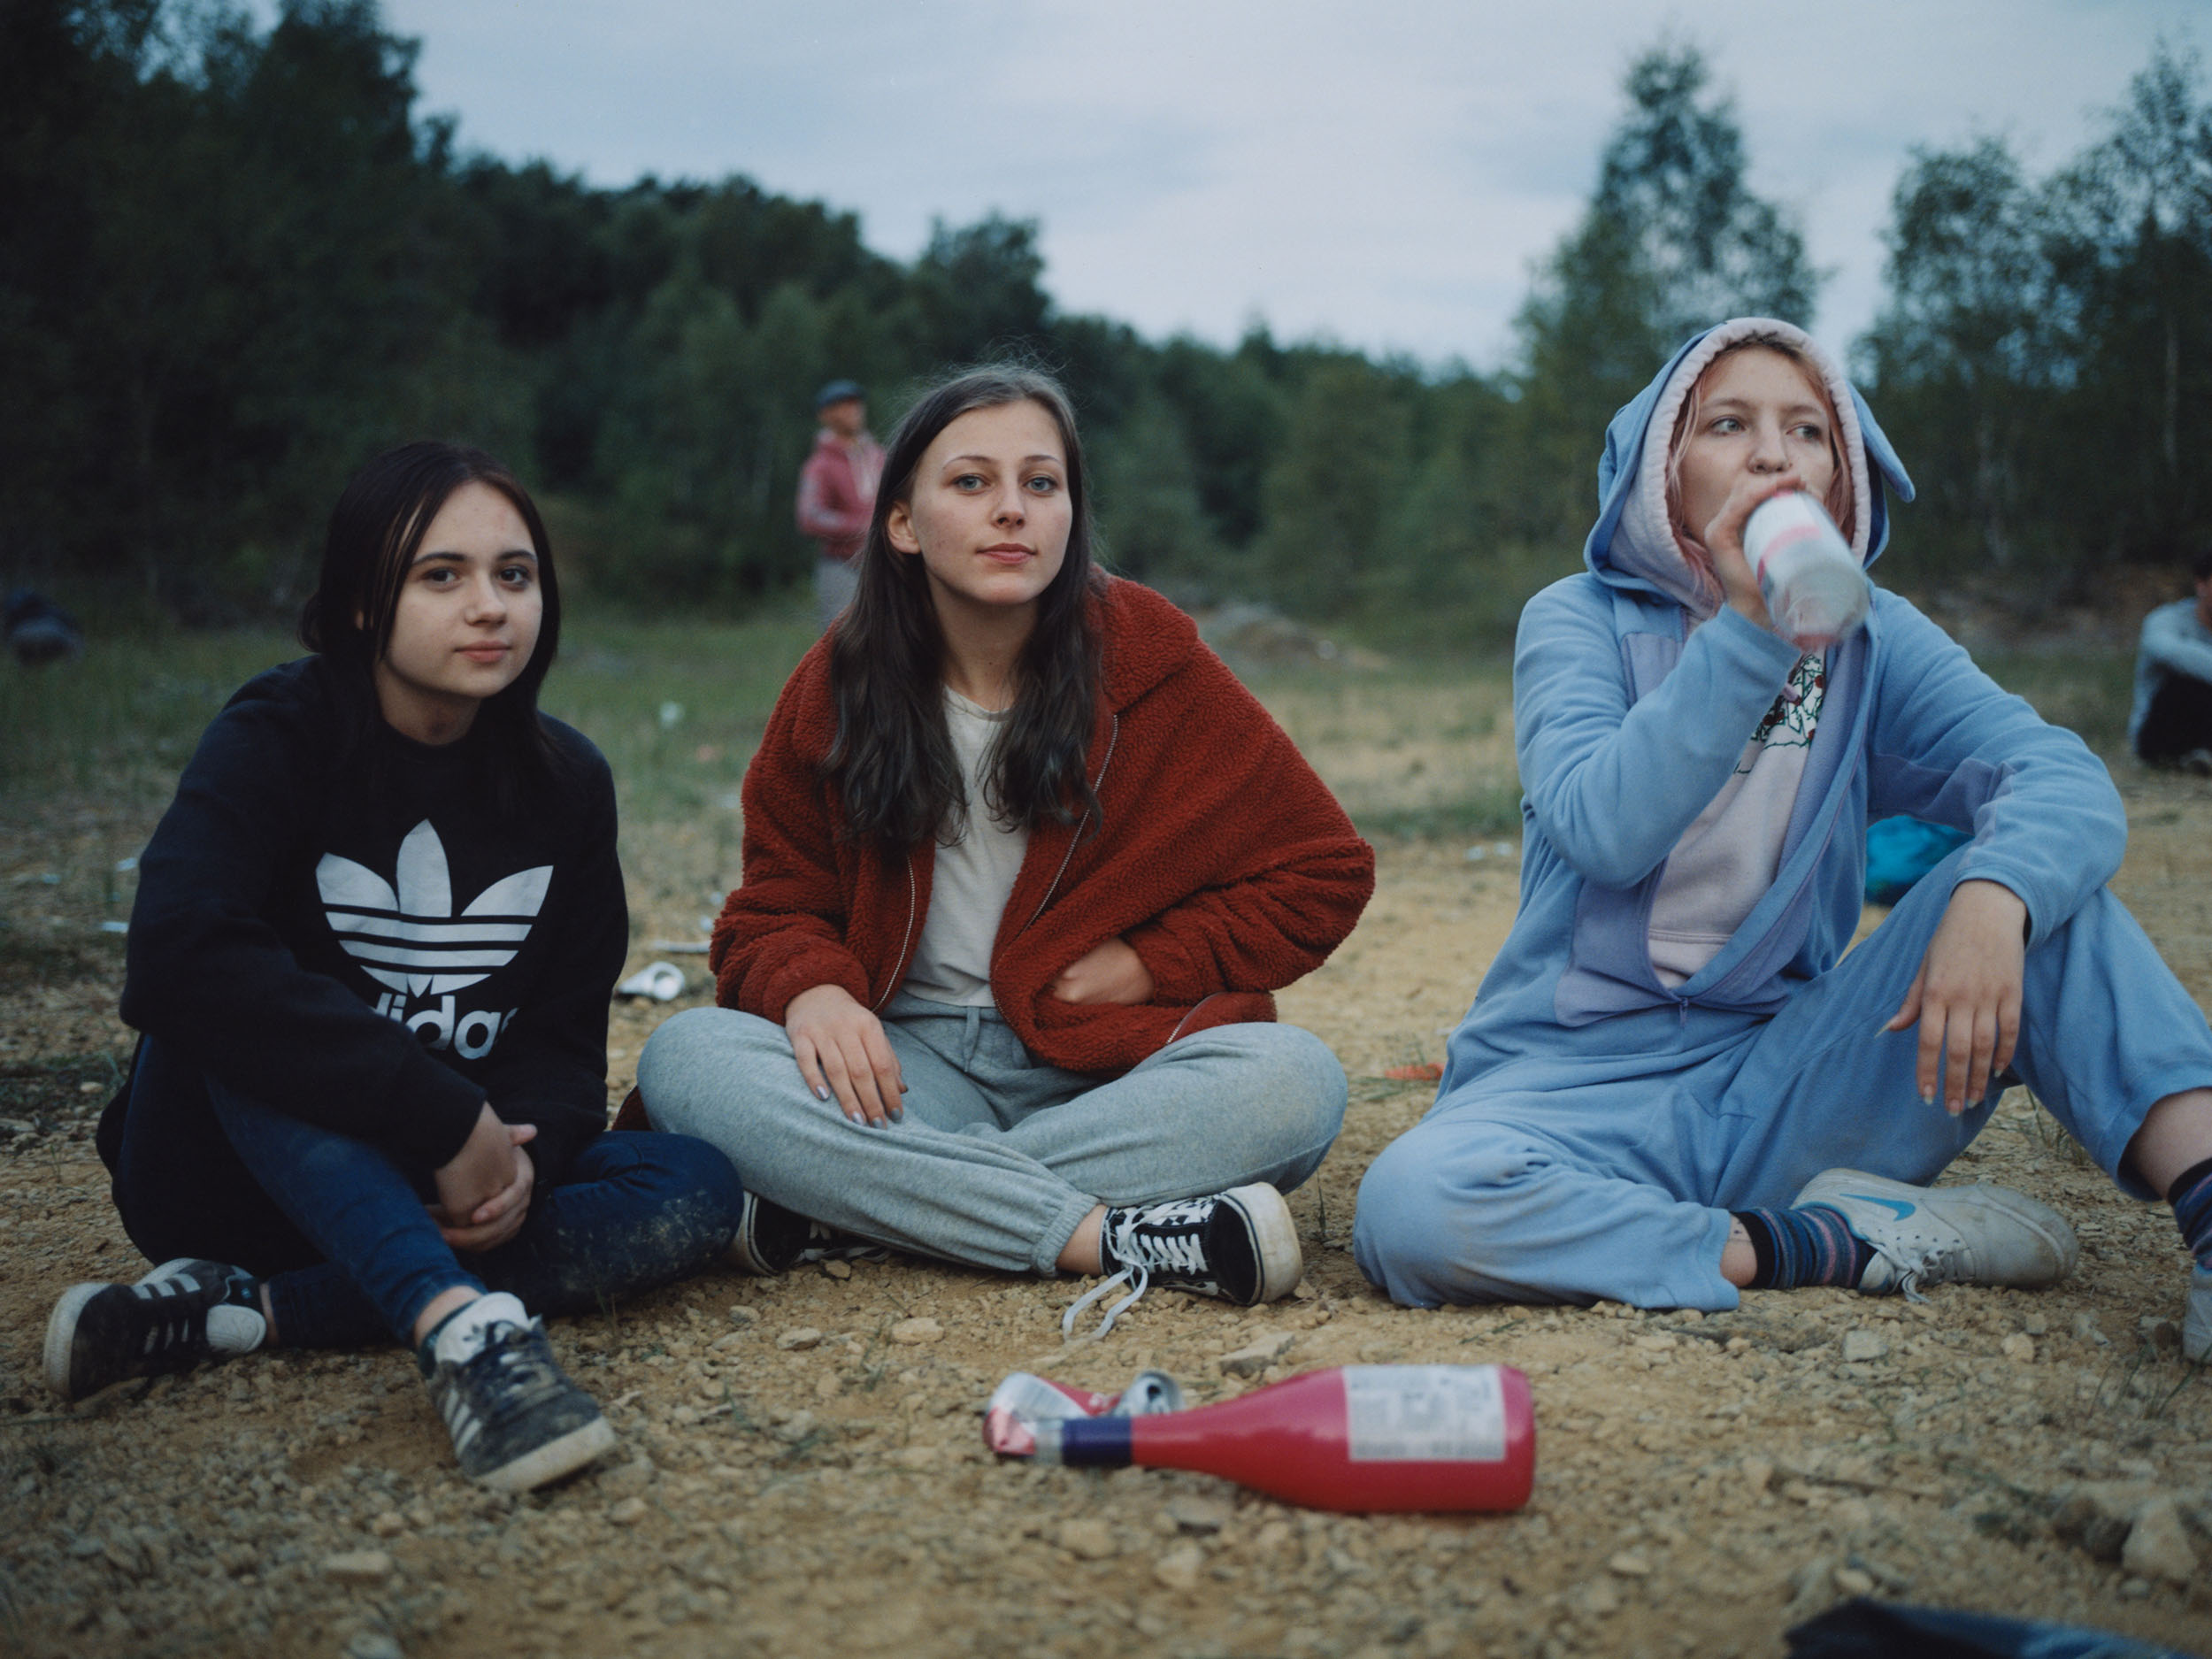 Saved by the rave: British youth are reclaiming public land to party, even during a pandemic